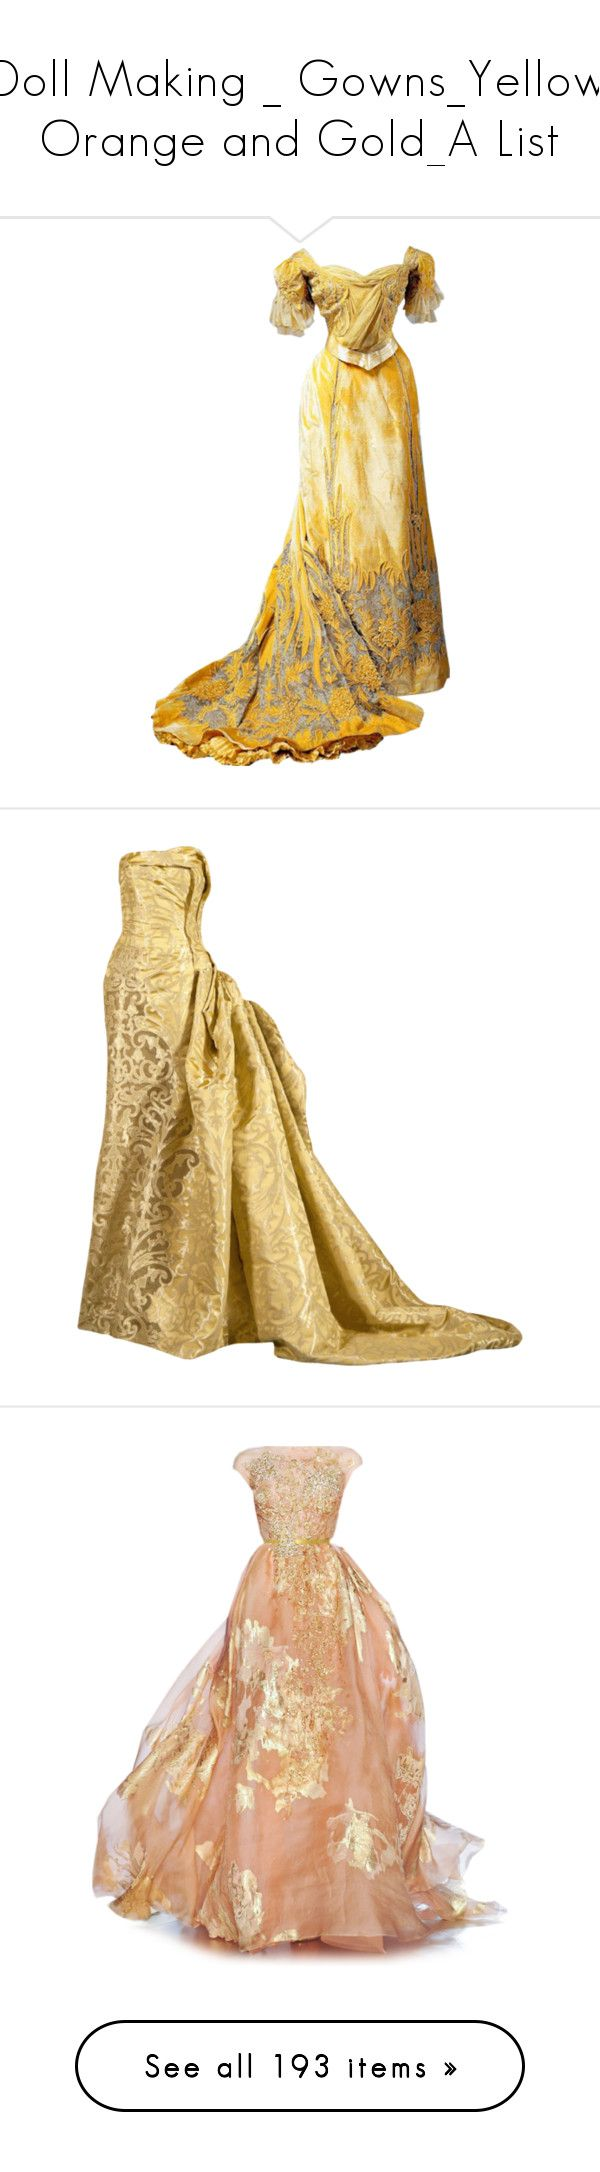 """Doll Making _ Gowns_Yellow. Orange and Gold_A List"" by auntiehelen ❤ liked on Polyvore featuring dresses, gowns, victorian, vintage, vintage evening gowns, victorian evening gown, vintage evening dresses, vintage dresses, victorian ball gowns and long dress"